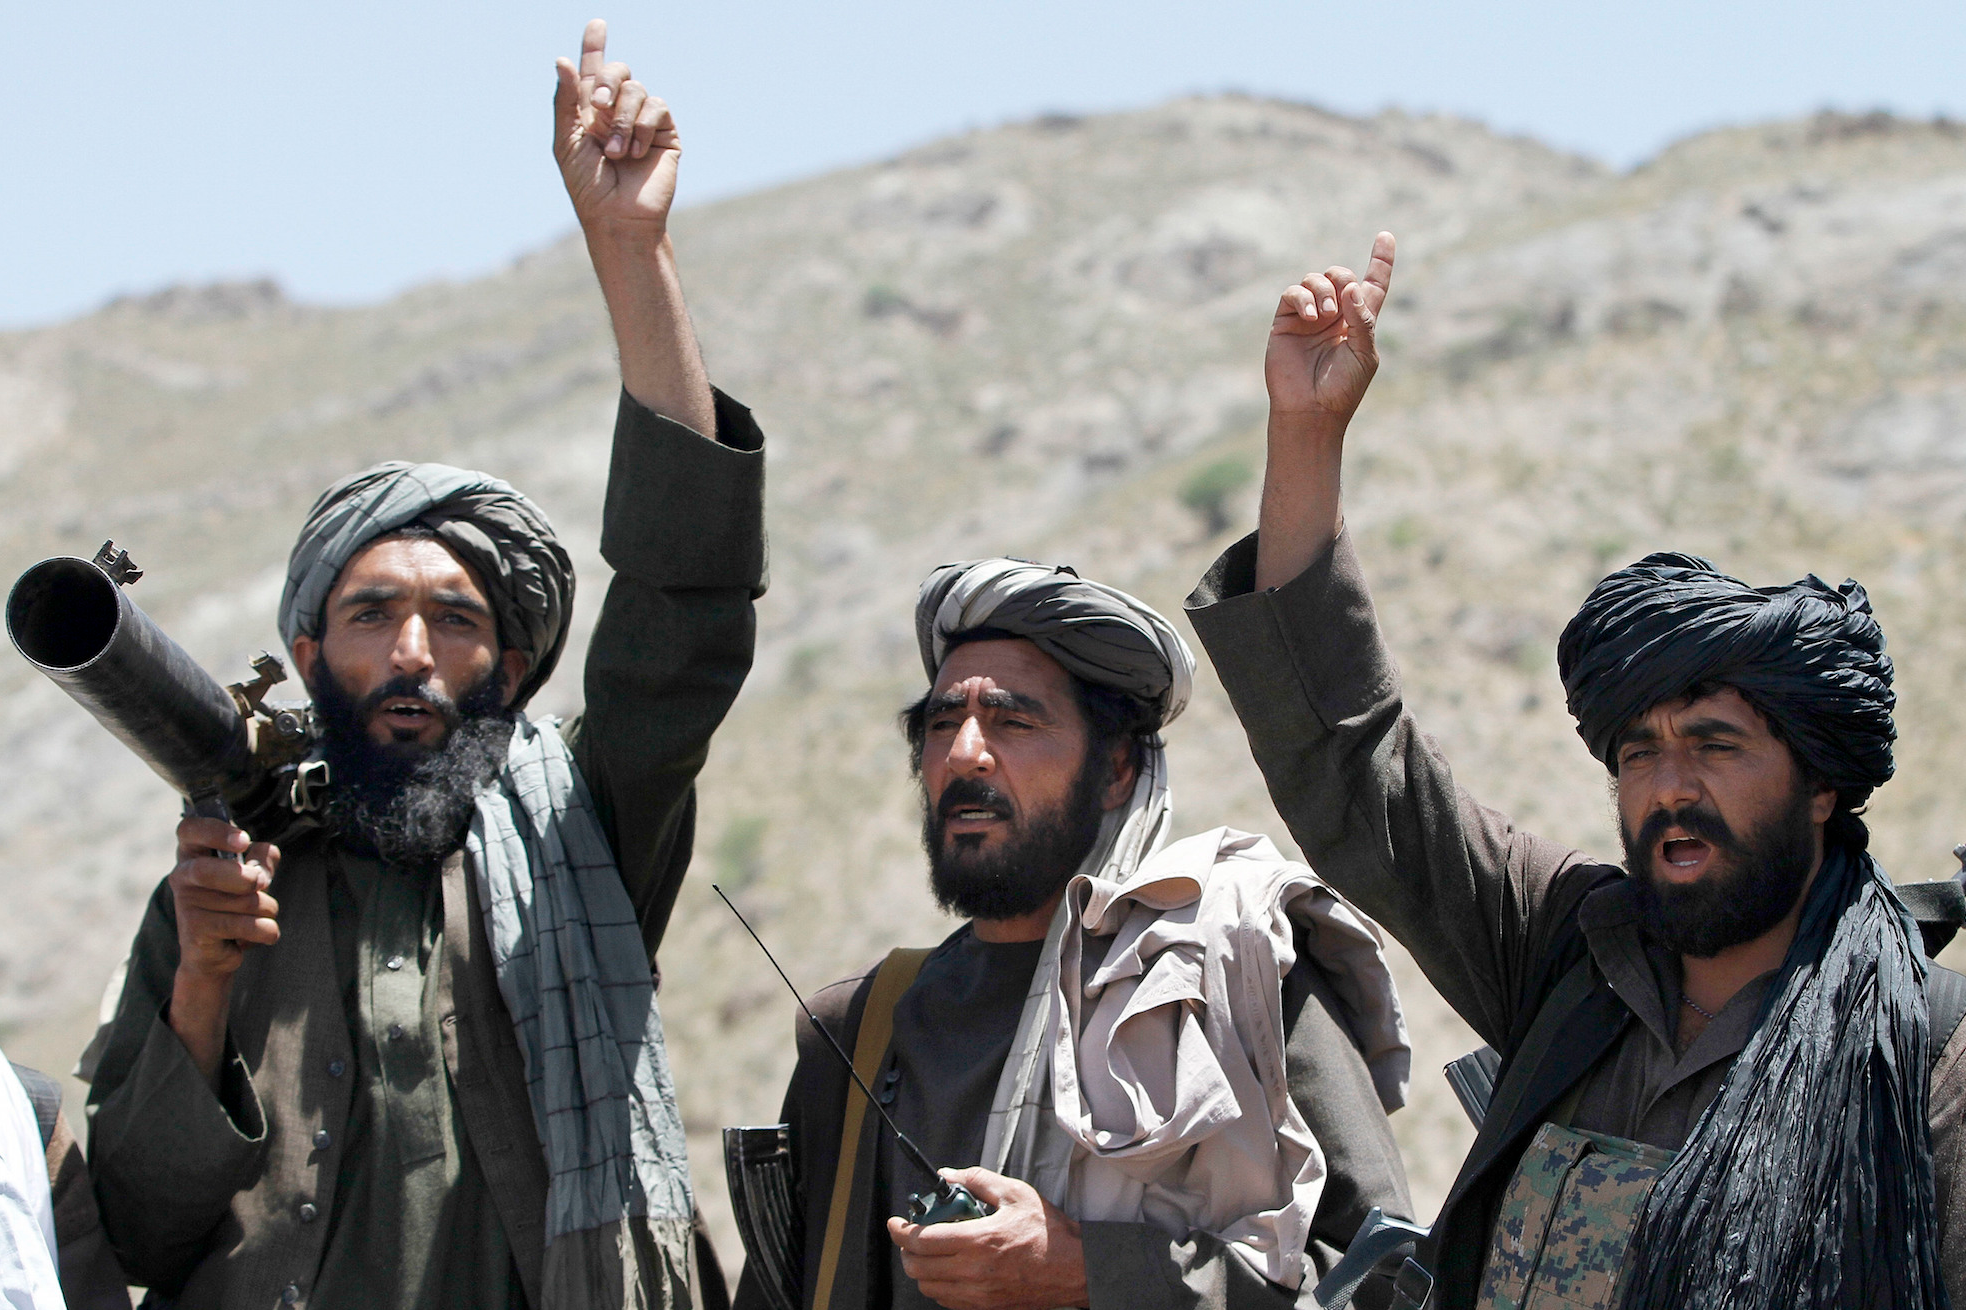 Will official Afghanistan initiate an anti-Taliban operation?